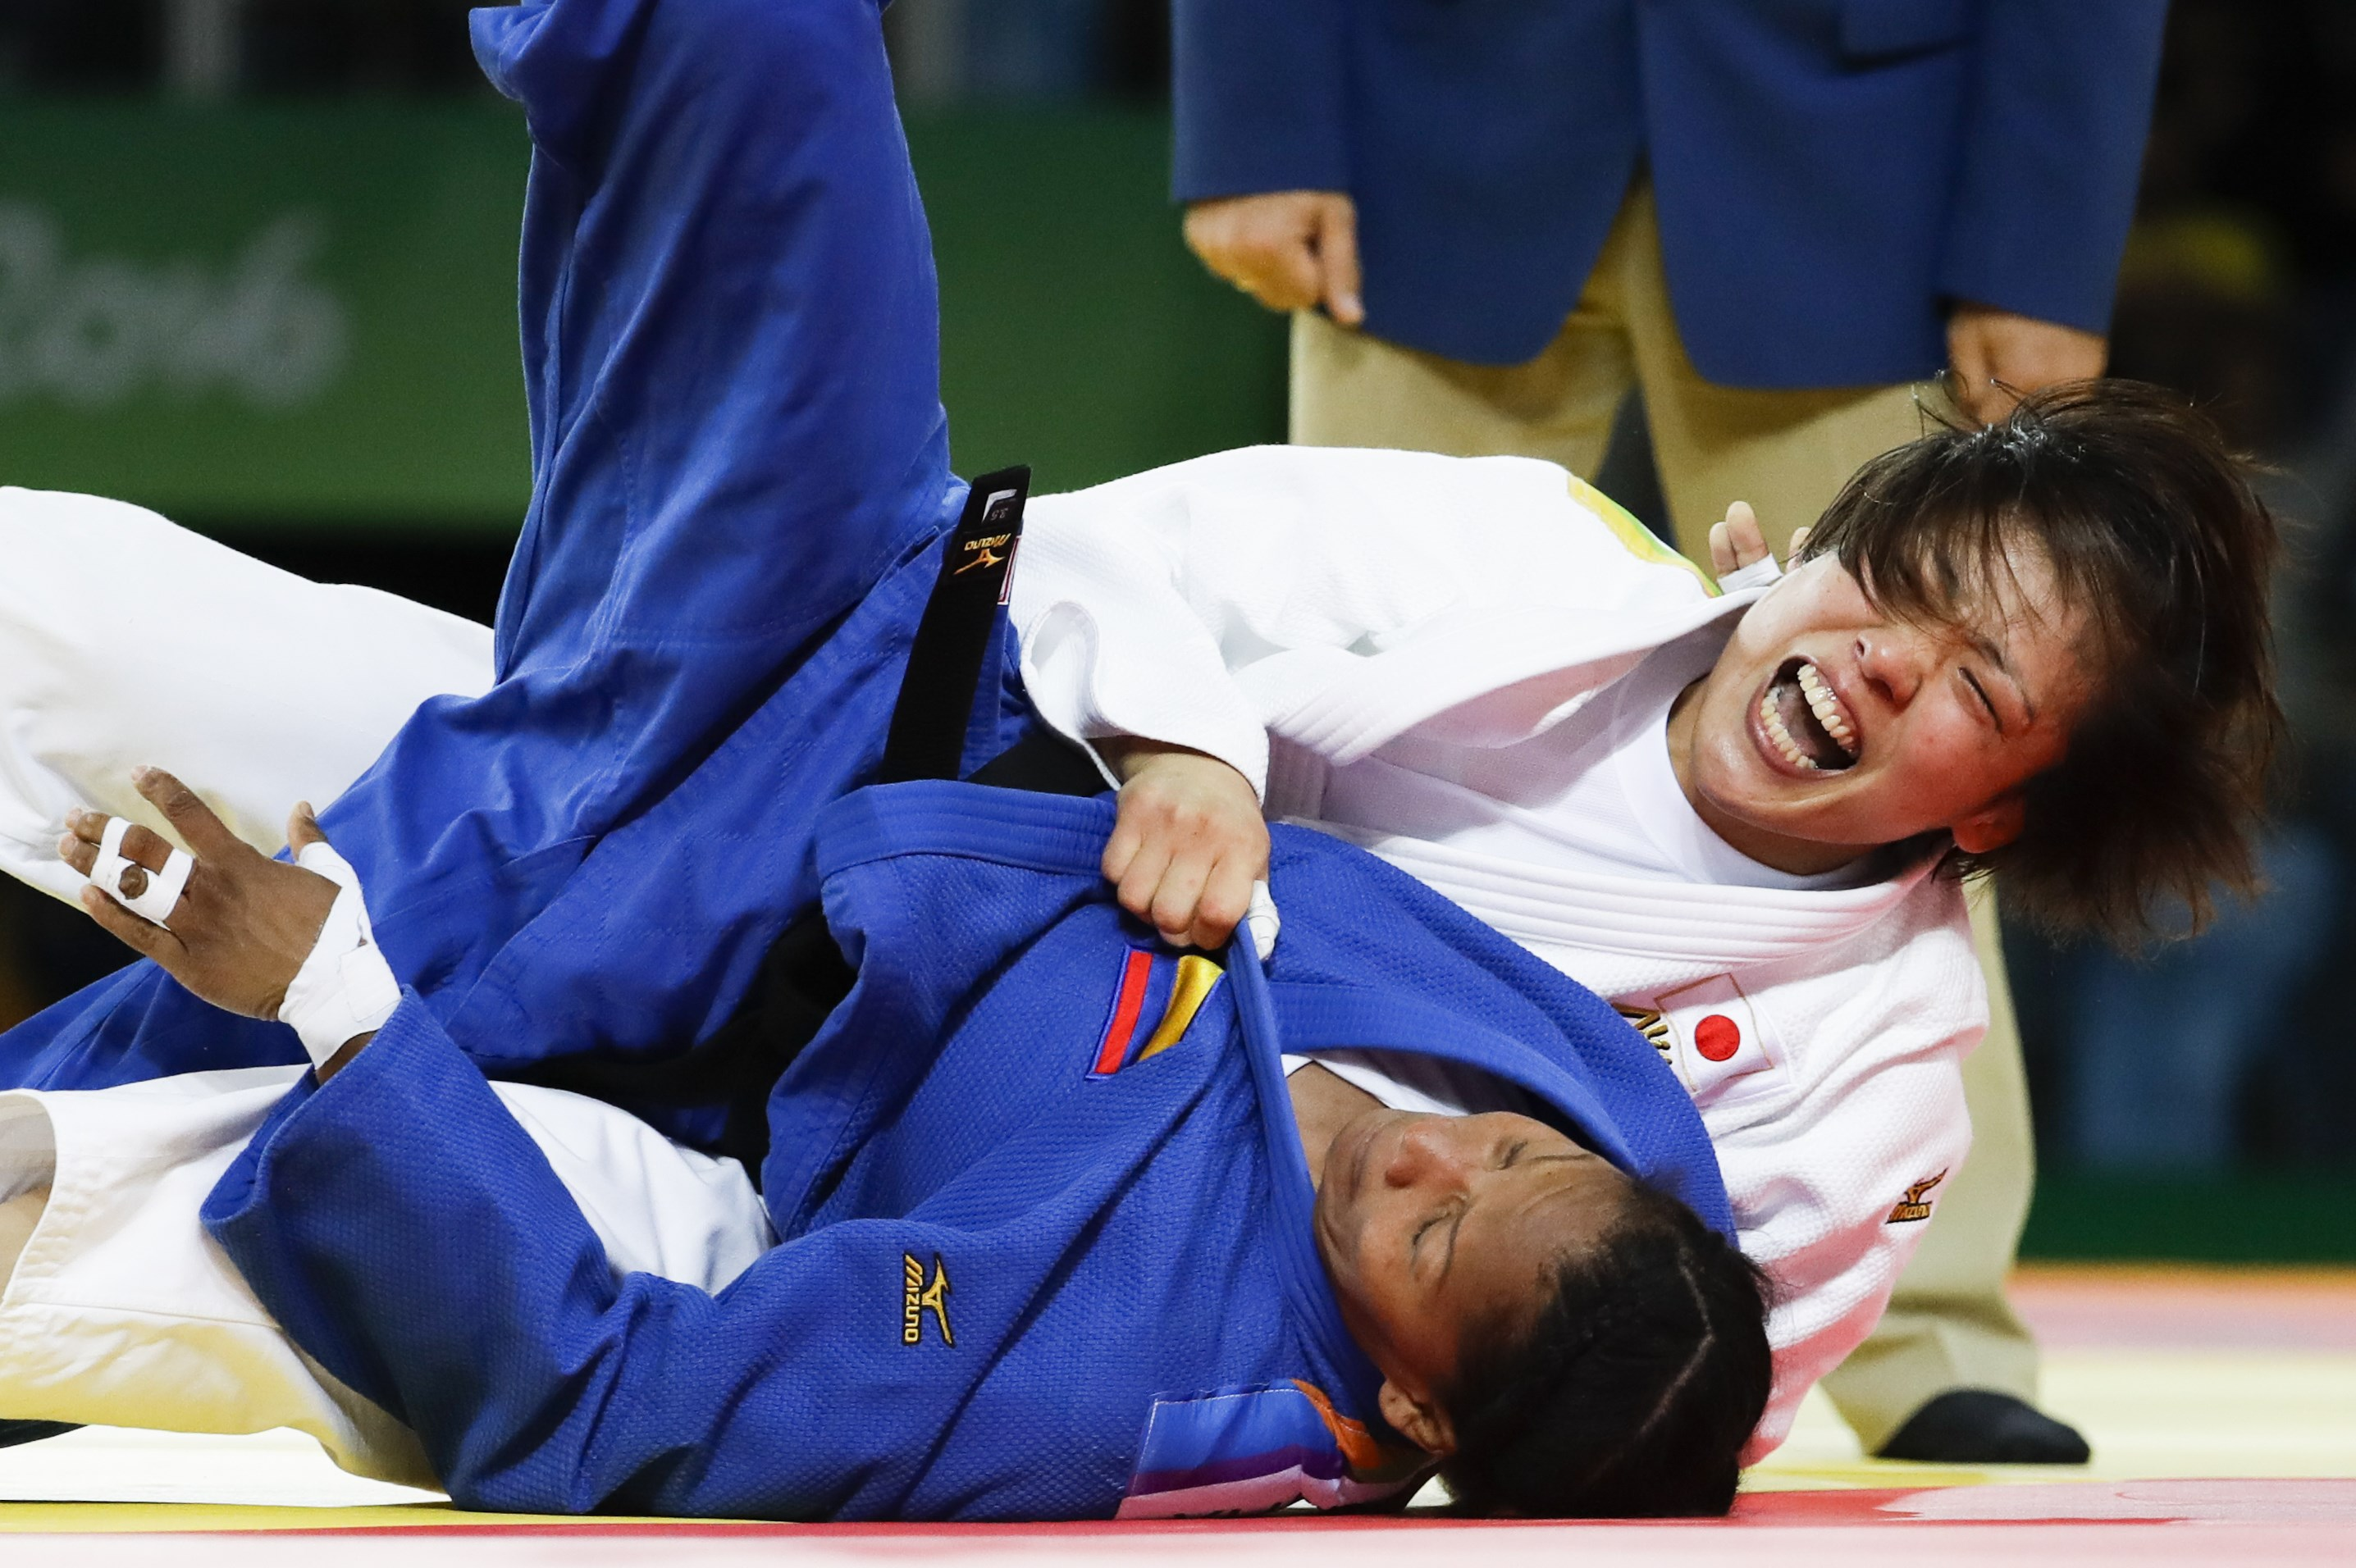 Japan's Haruka Tachimoto, white, competes against, Colombia's Yadinys Amaris for the gold medal during the women's 70-kg judo competition at at the 2016 Summer Olympics in Rio de Janeiro, Brazil, Wednesday, Aug. 10, 2016. (AP Photo/Markus Schreiber)